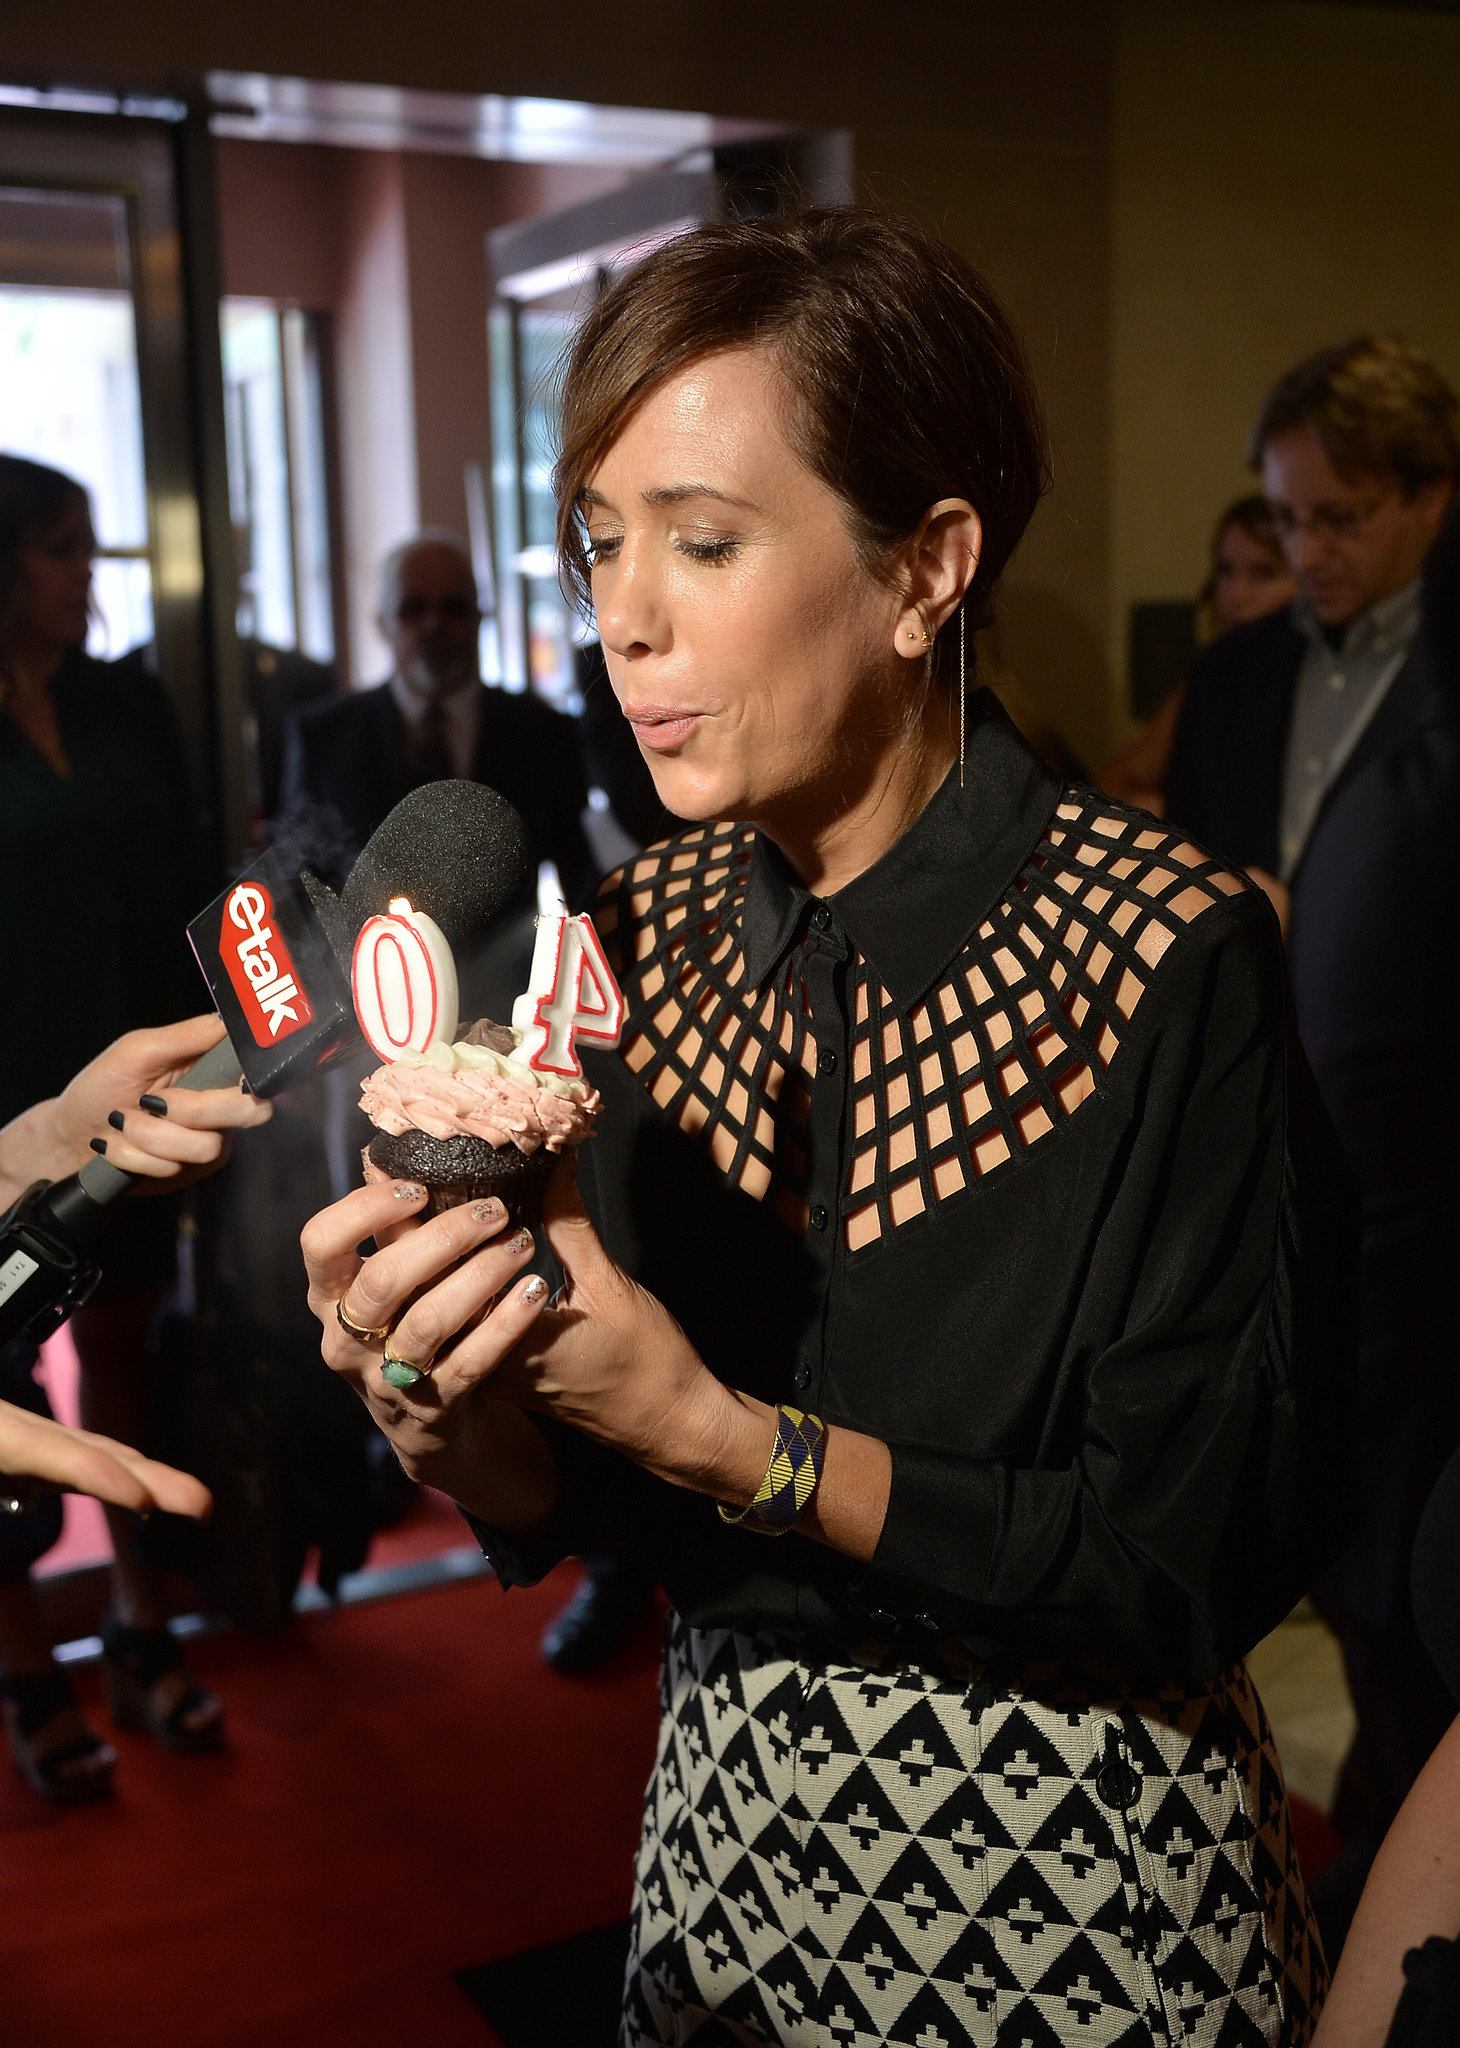 Kristen Wiig, who celebrated her 40th birthday last month, blew out candles on a cupcake.